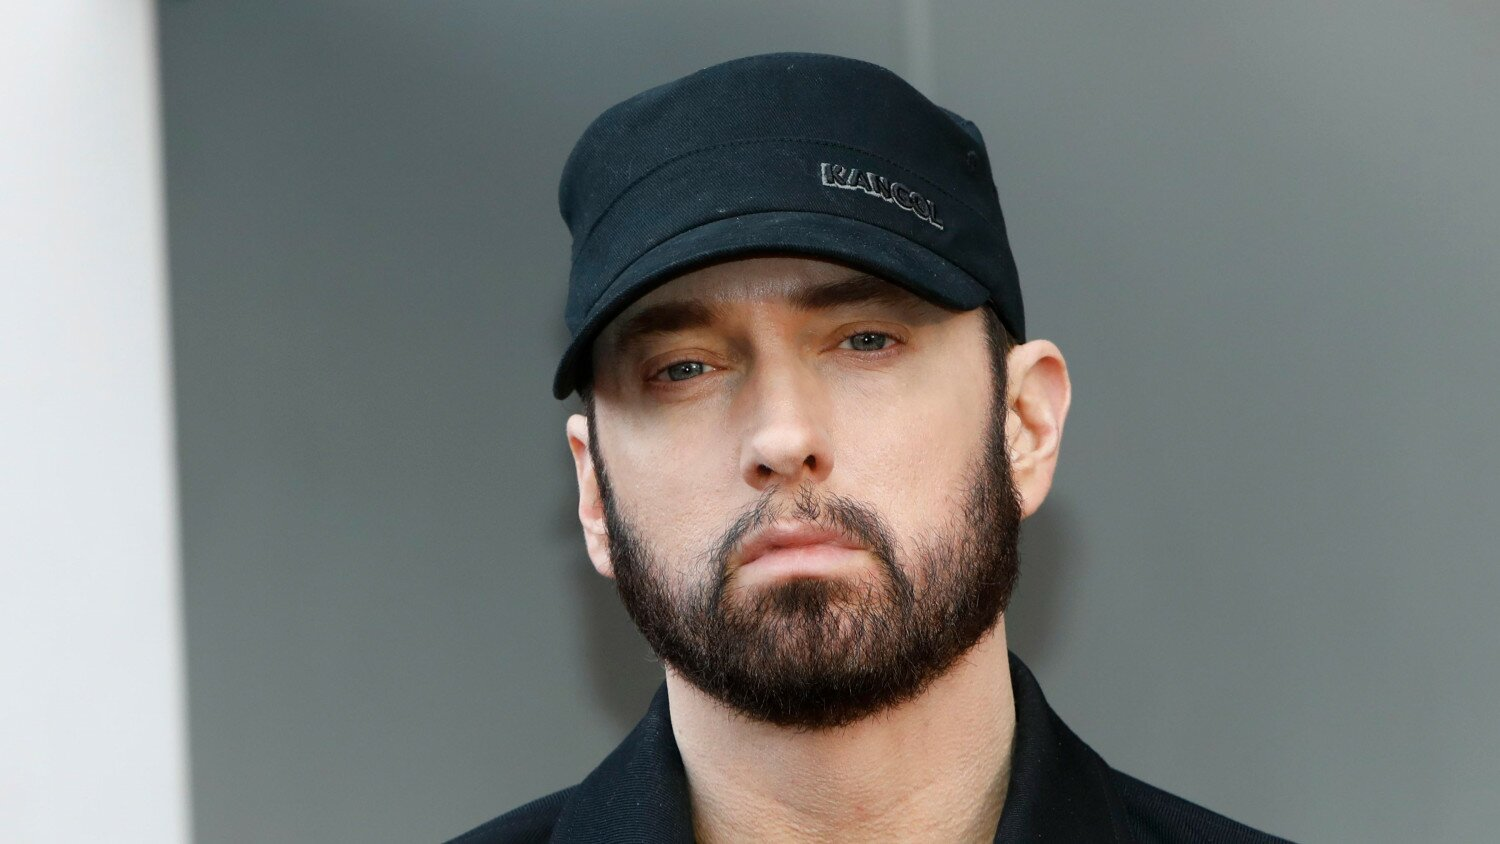 Eminem isn't releasing new music, manager says